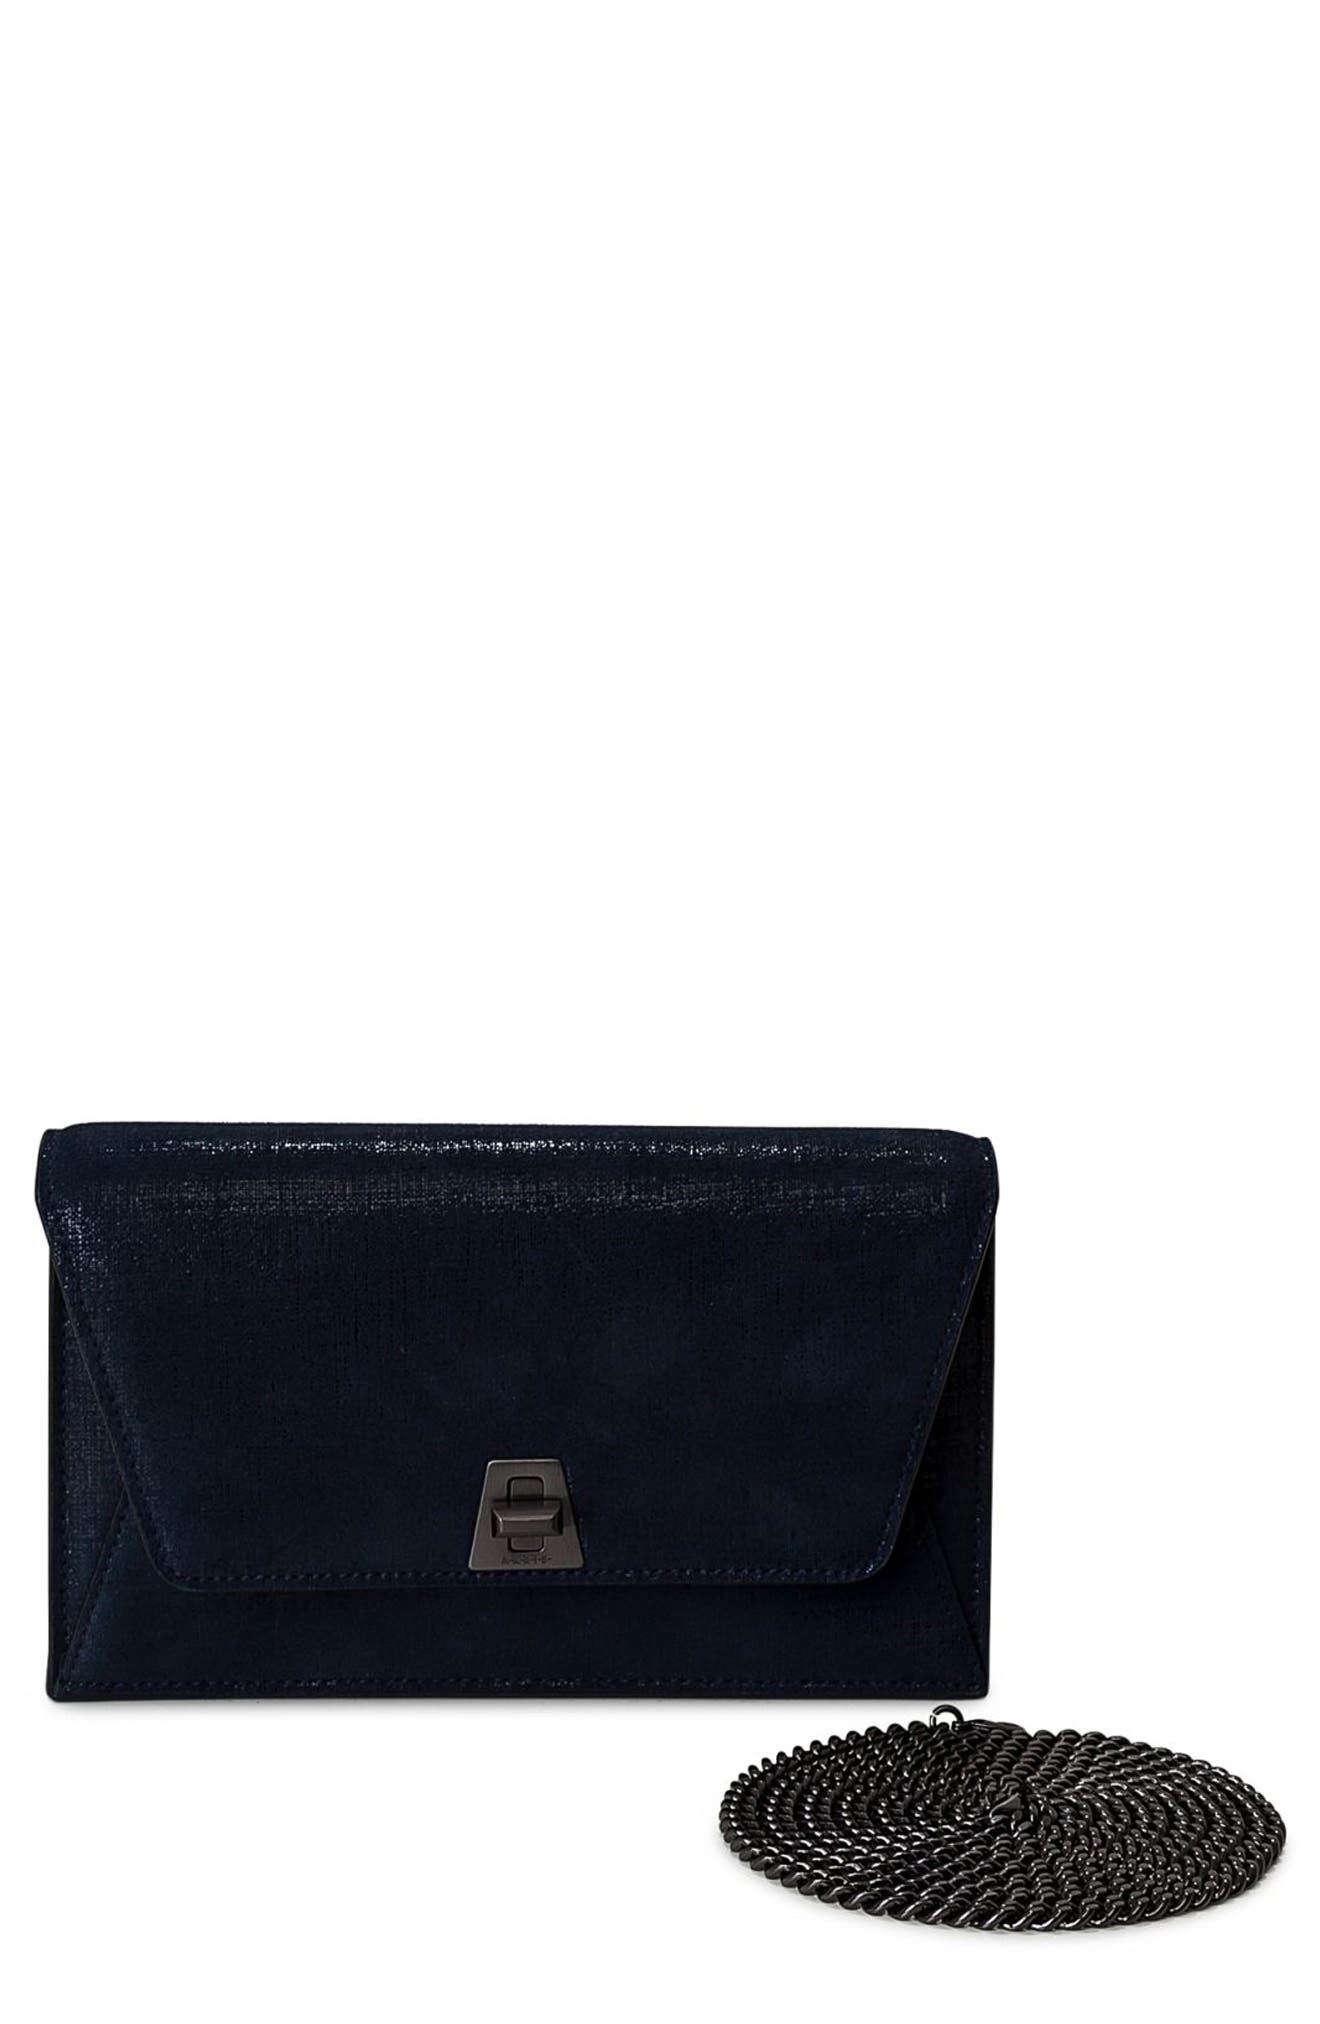 Akris Anouk Leather Shoulder Bag